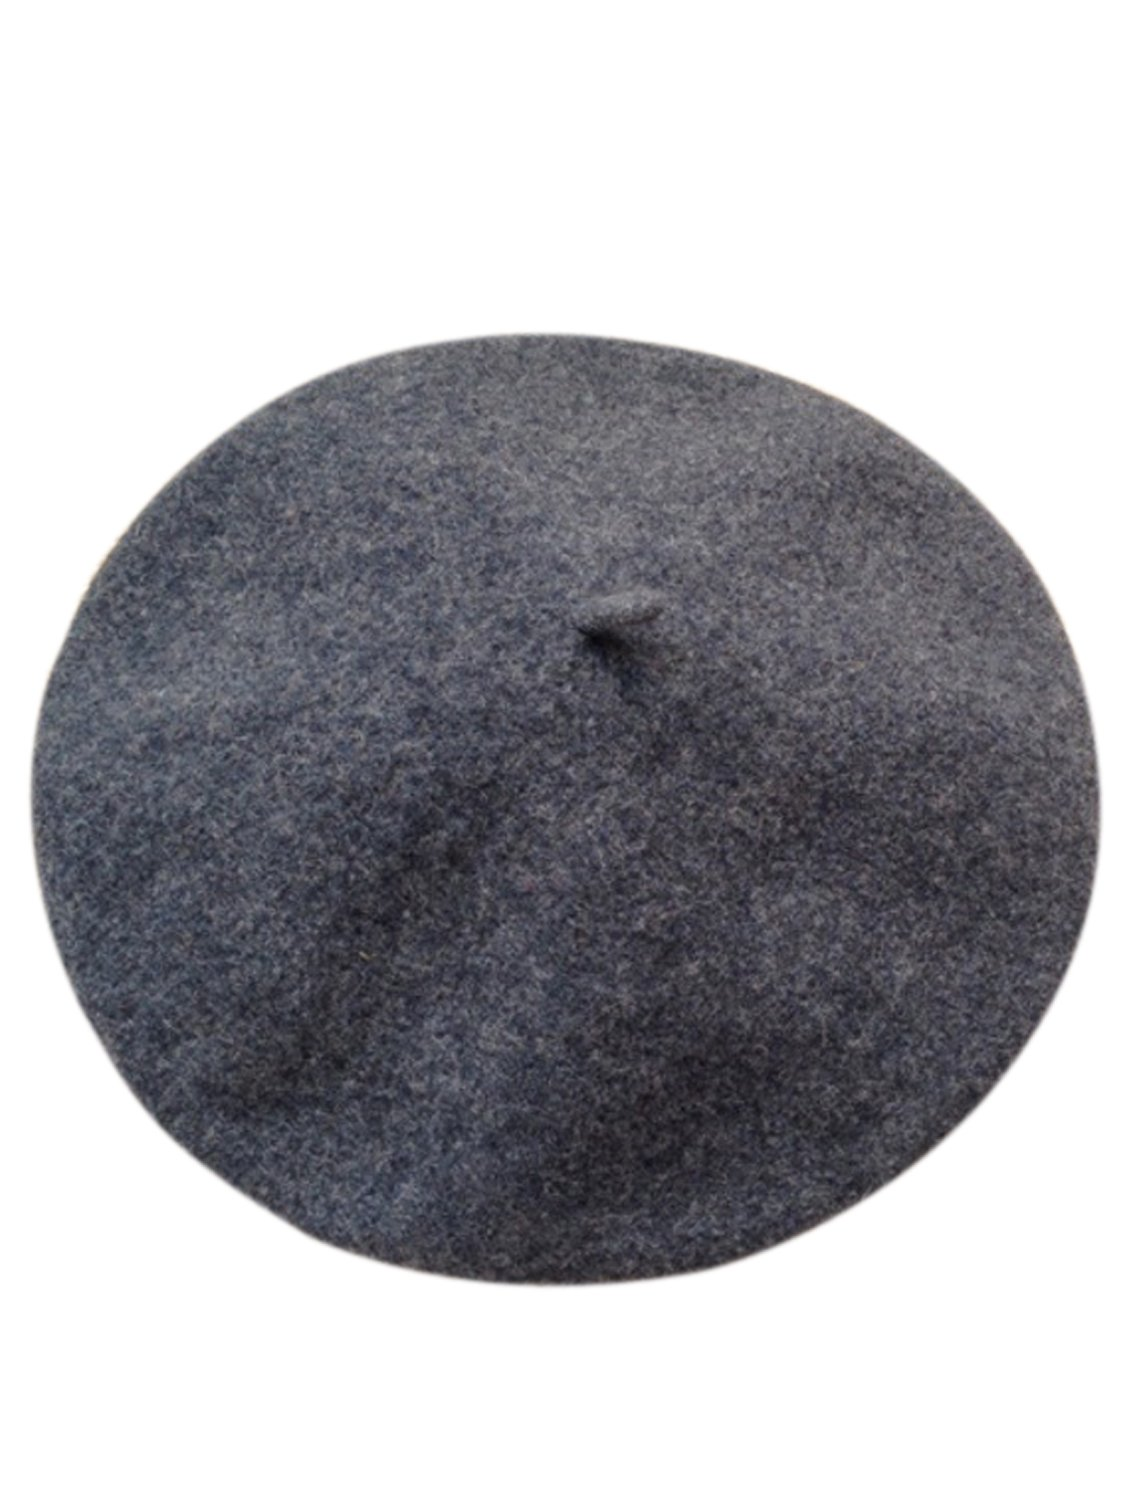 Clothink Wool Beret Hat Classic Solid Color French Beret Gray